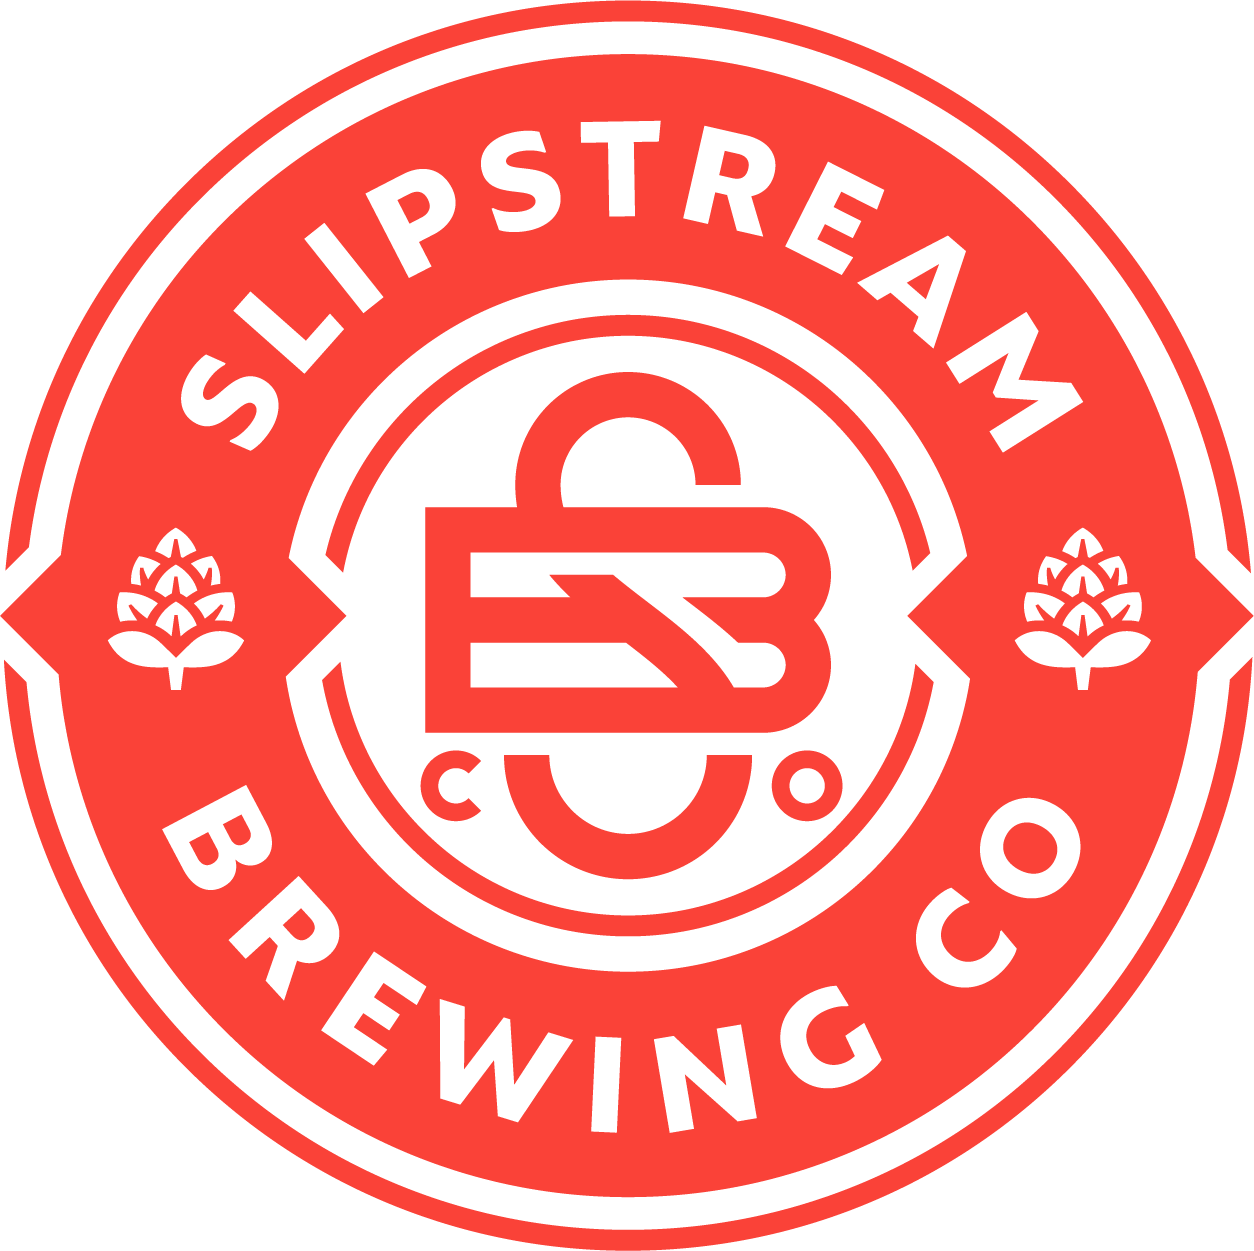 Slipstream Brewing